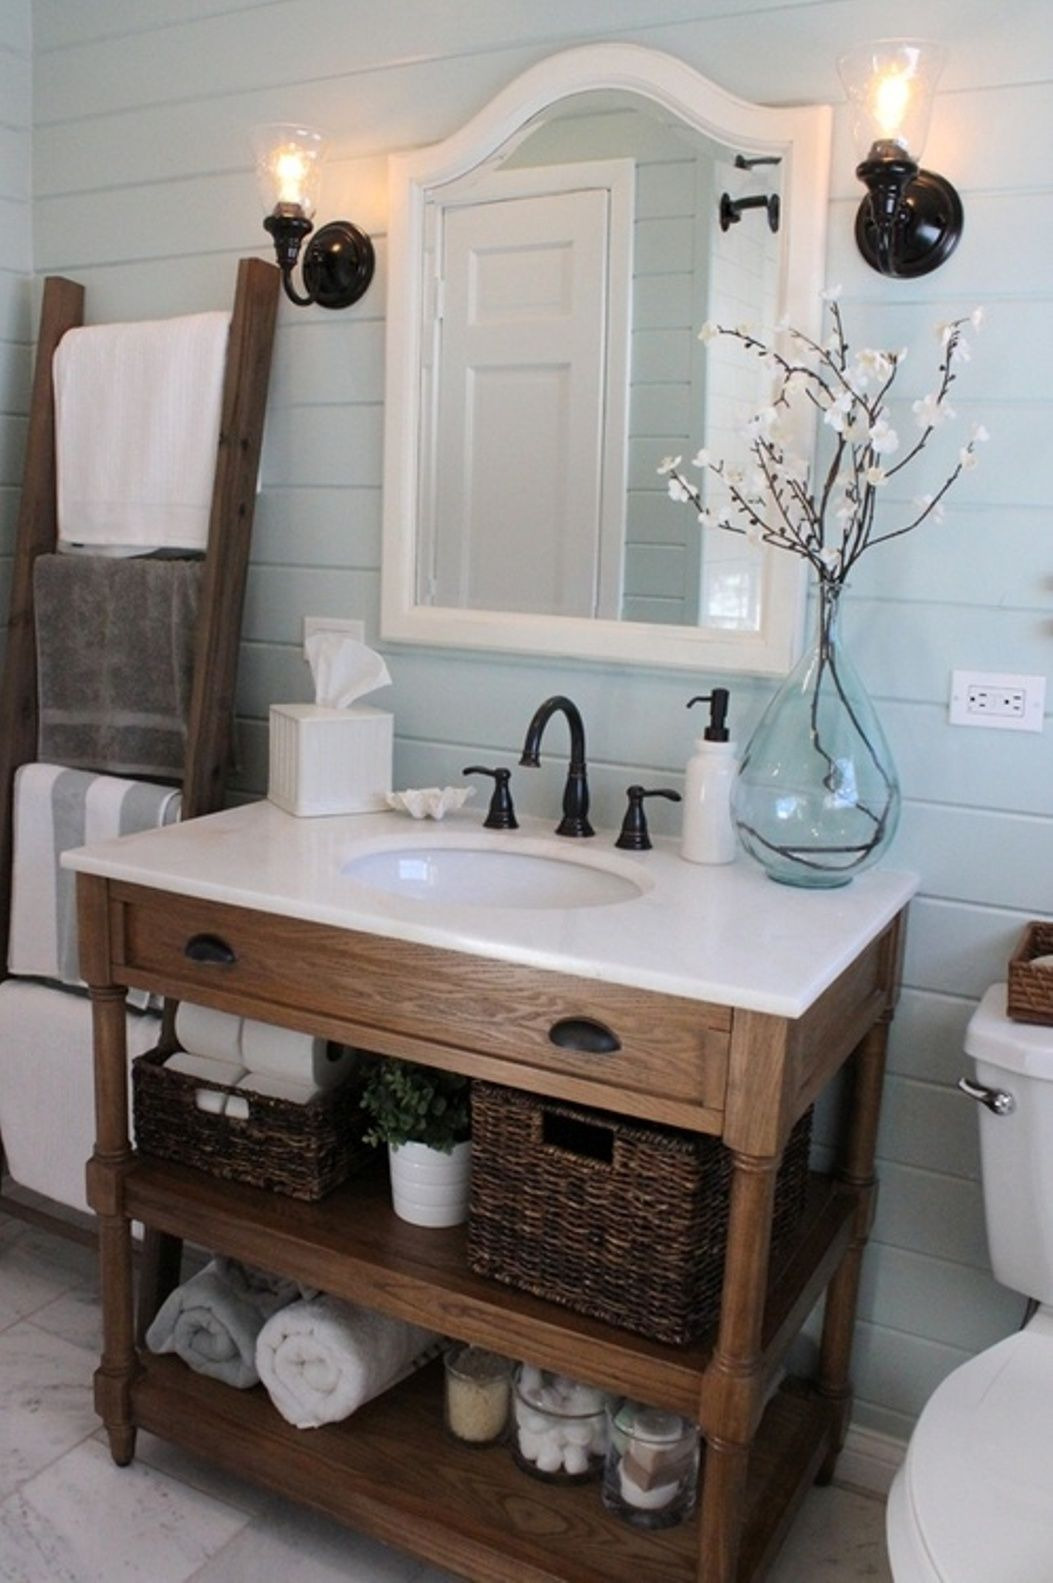 04 rustic bathroom design decor ideas homebnc